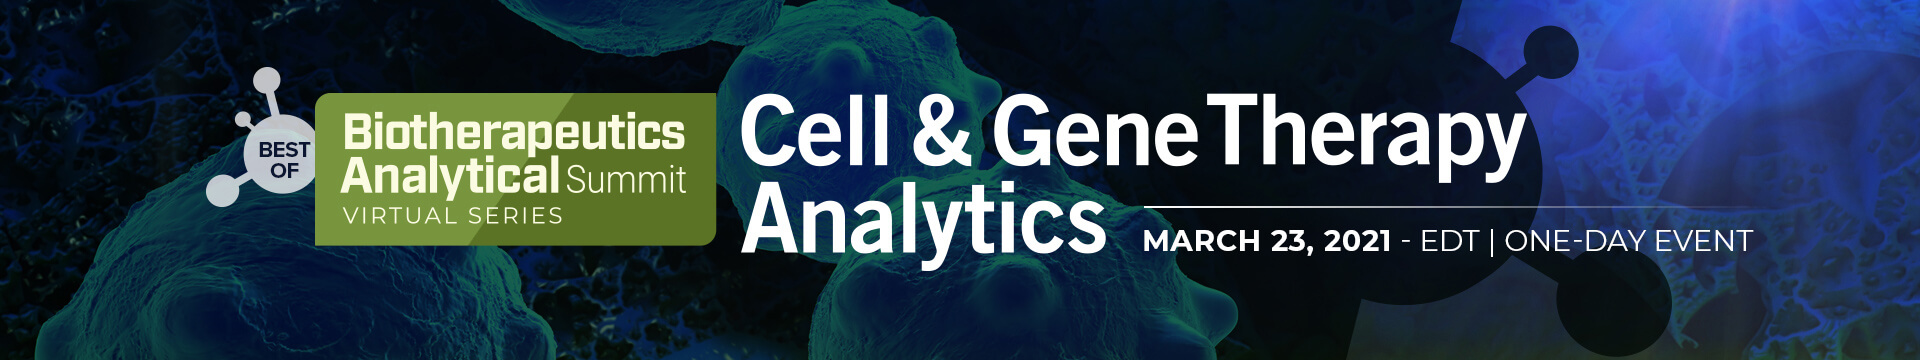 Cell & Gene Therapy Analytics Banner Image